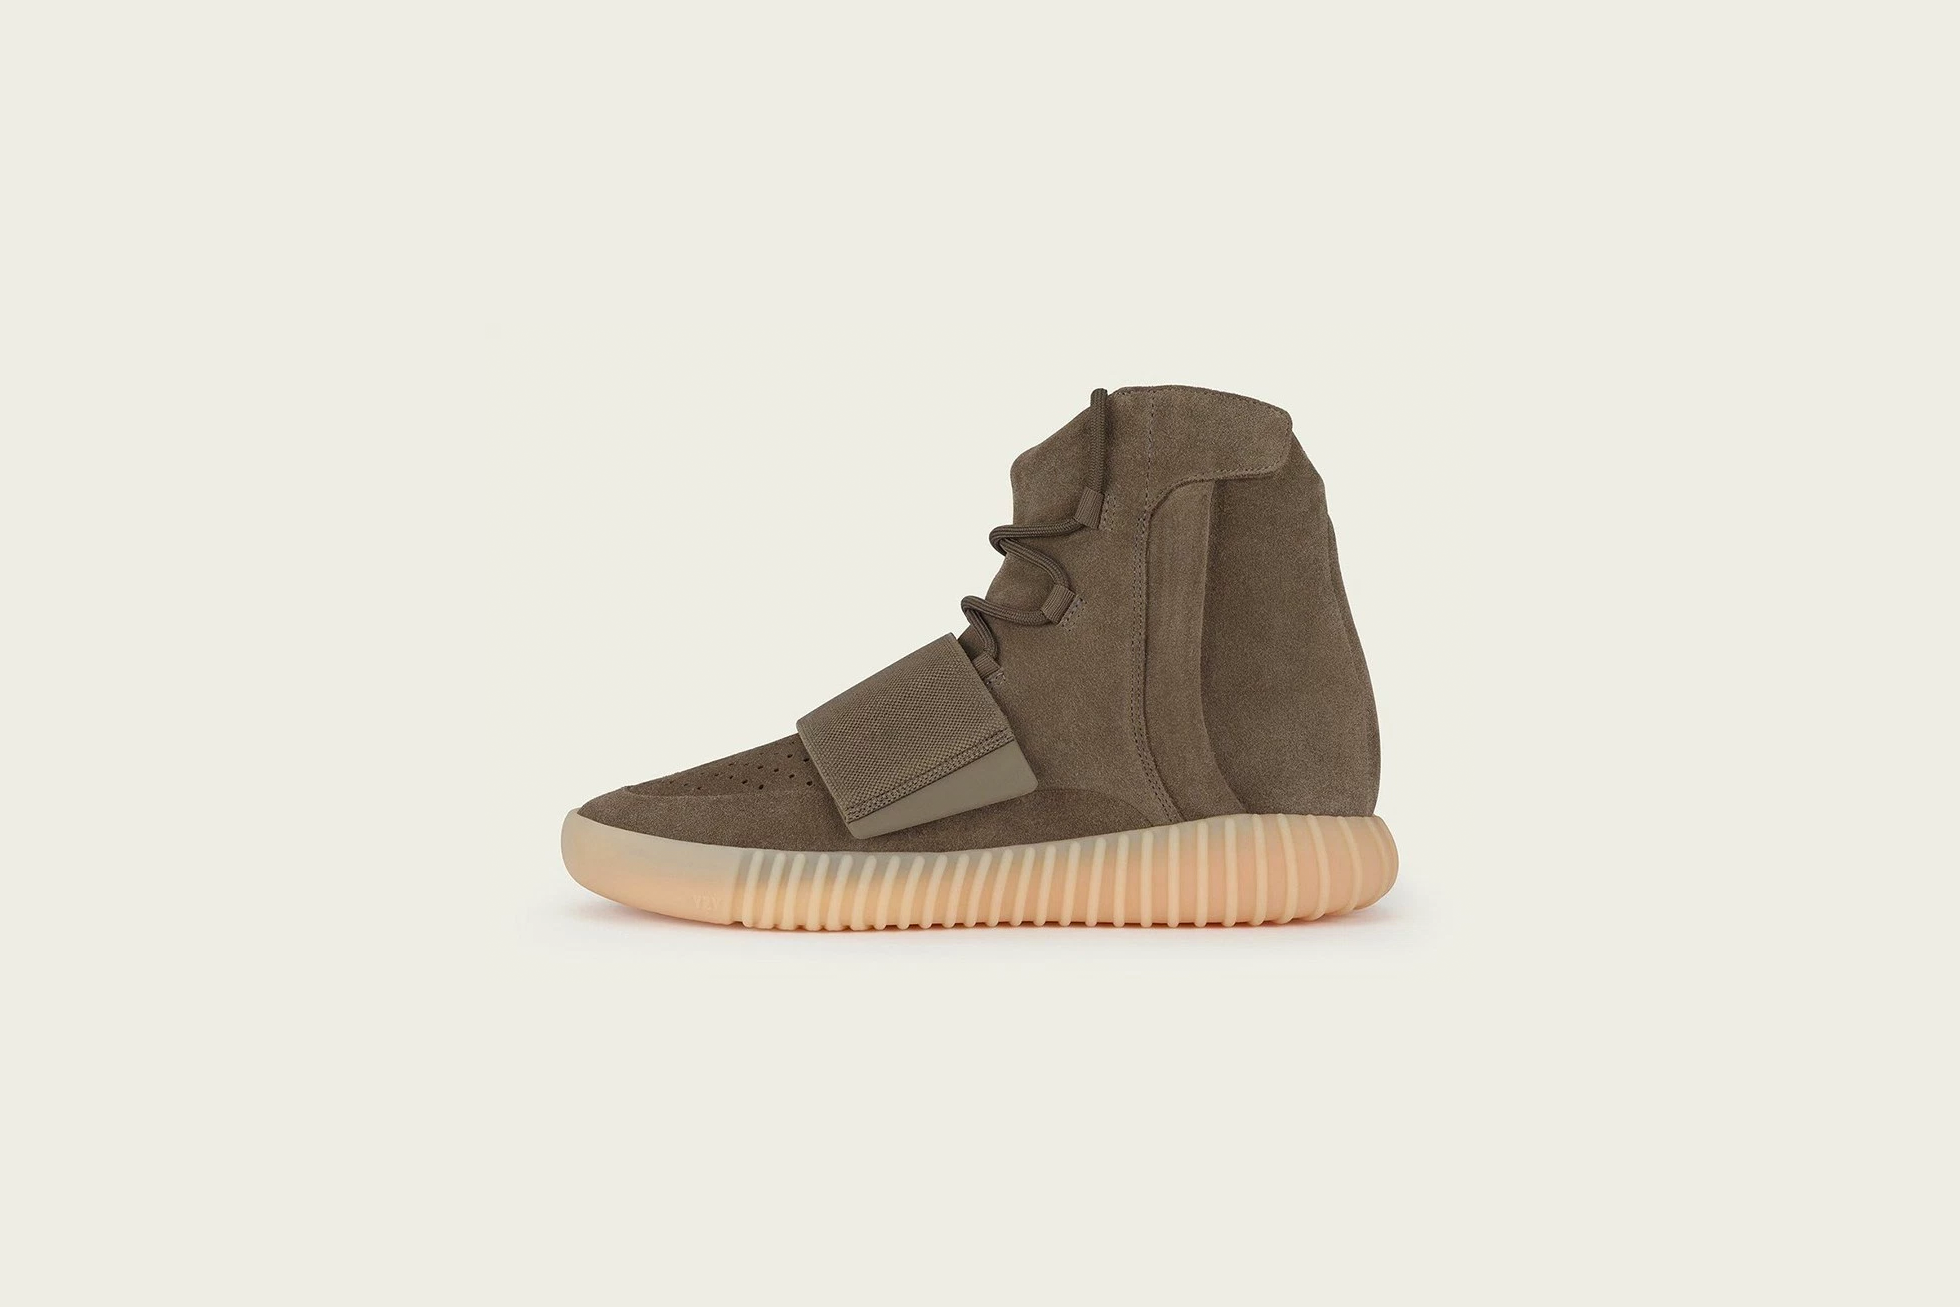 adidas Yeezy Boost 750 Brown 1